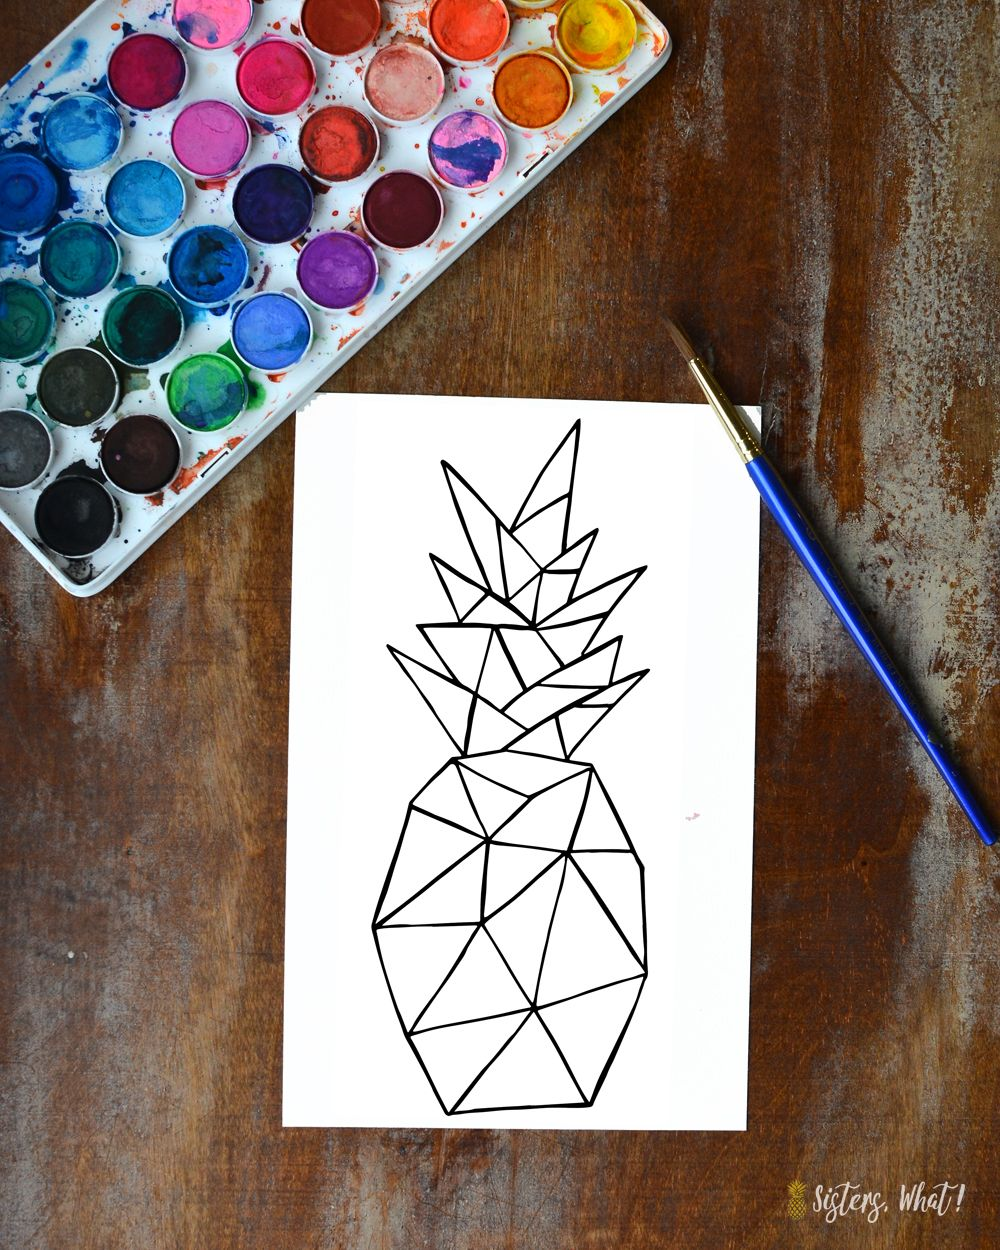 1000x1250 Love Of Watercoloring And Free Geometric Pineapple Print Downloads